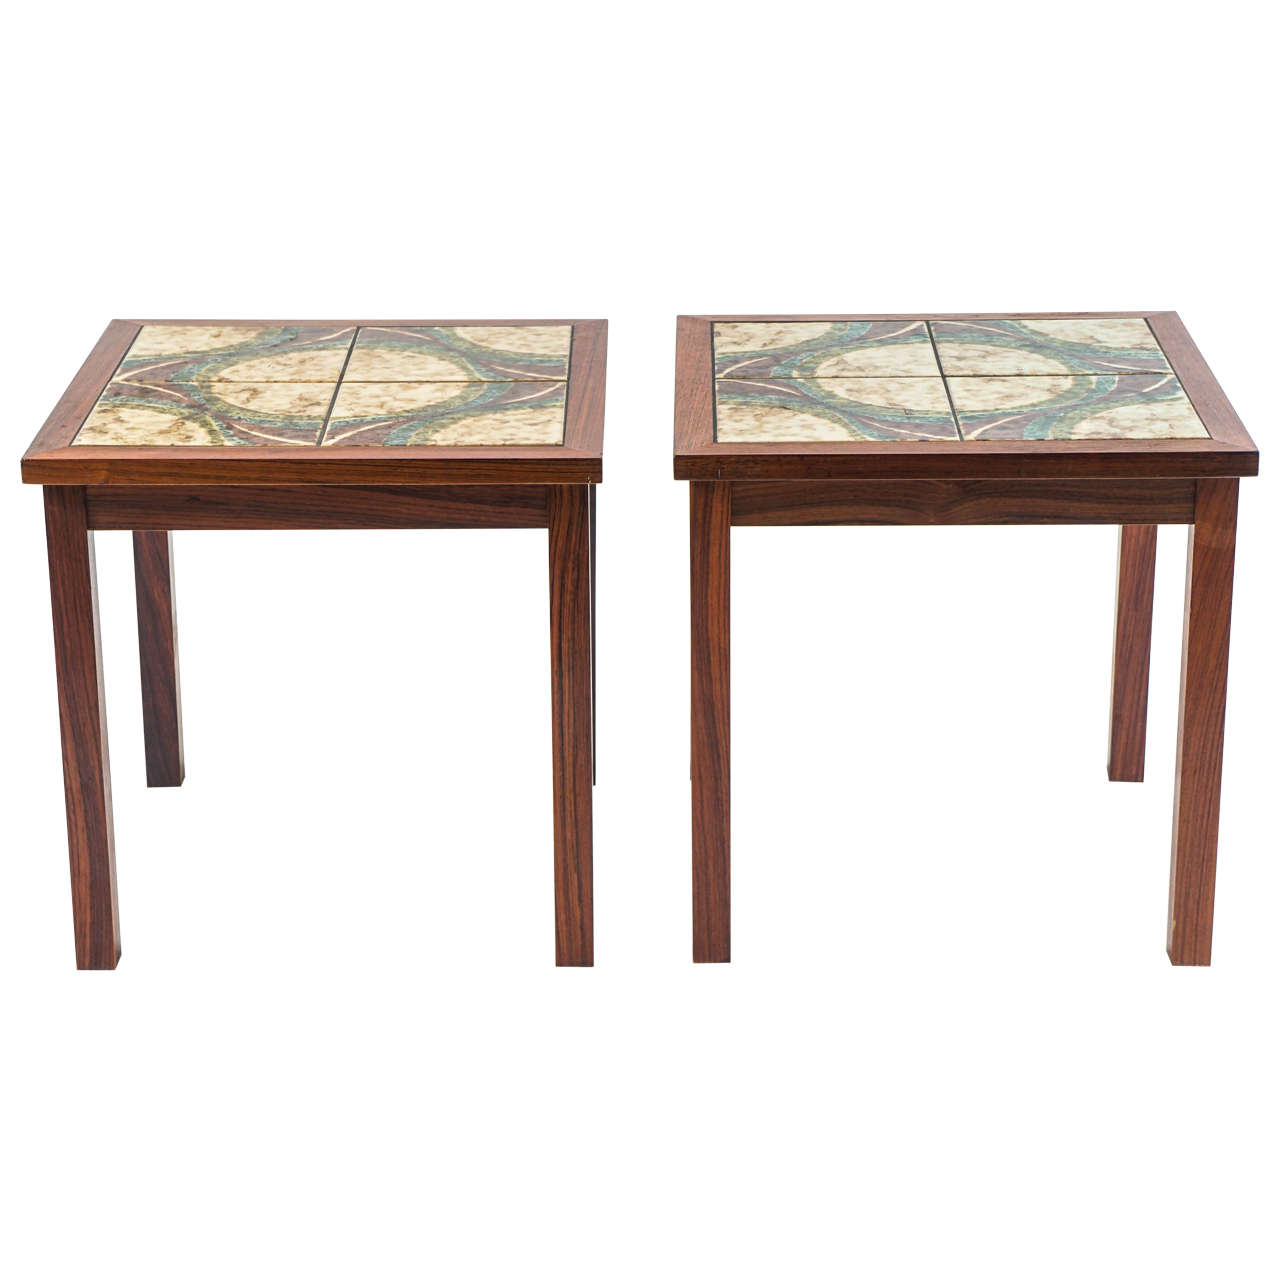 Tile Coffee Table Set: Pair Of Rosewood And Tile-Top Cocktail Or End Tables For